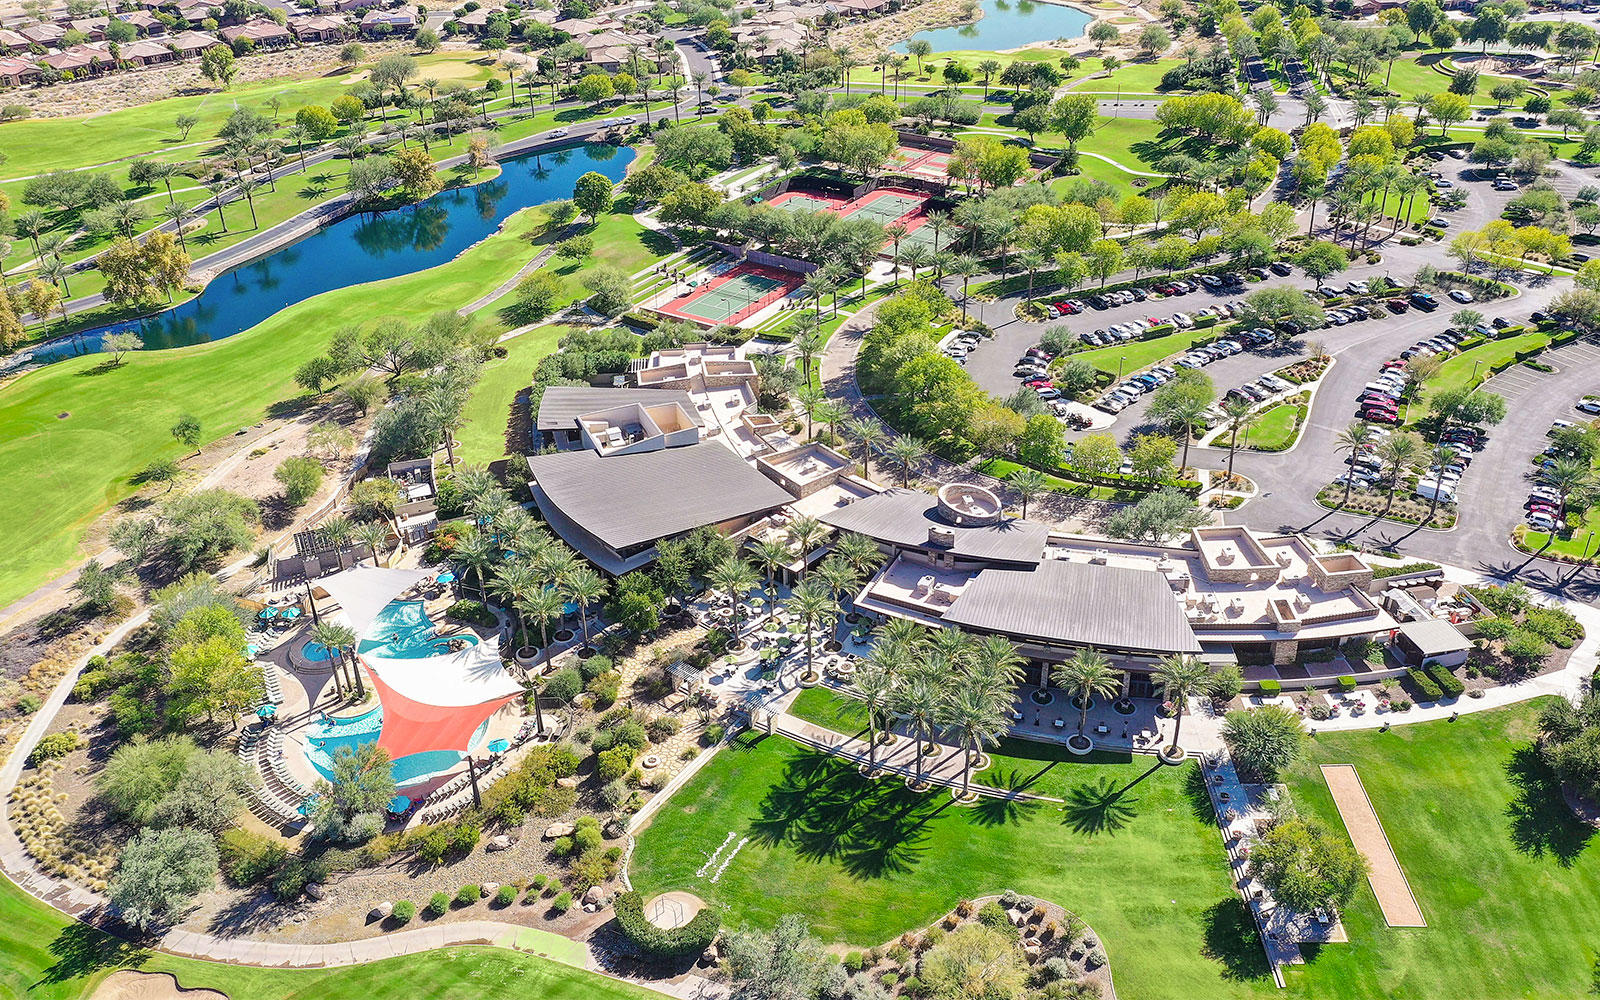 Aerial view of the Kiva Club and surrounding golf course in Trilogy at Vistancia in Peoria, Arizona